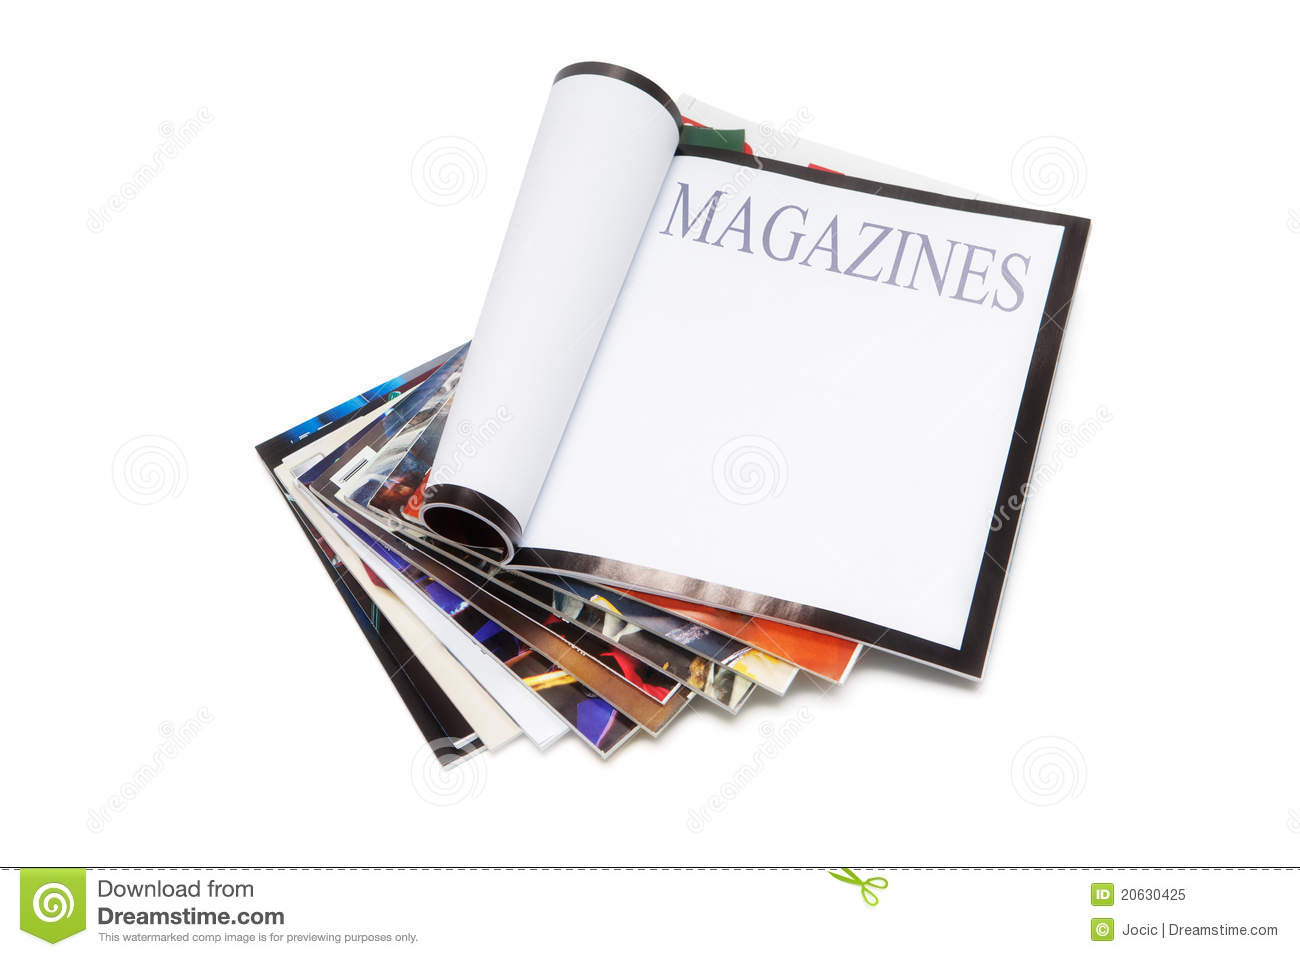 Binder clipart pile document.  collection of magazine